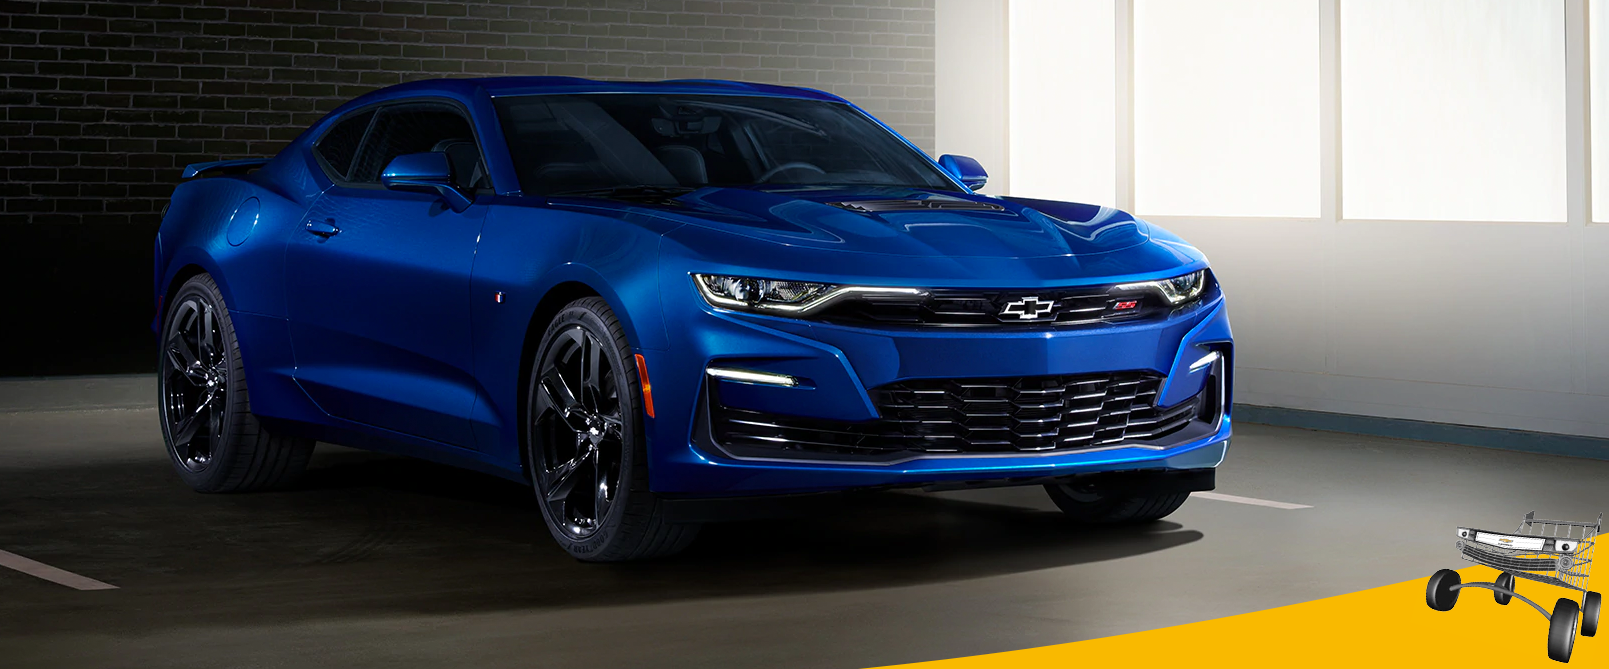 What's New With 2021 Chevy Cars Chicago IL